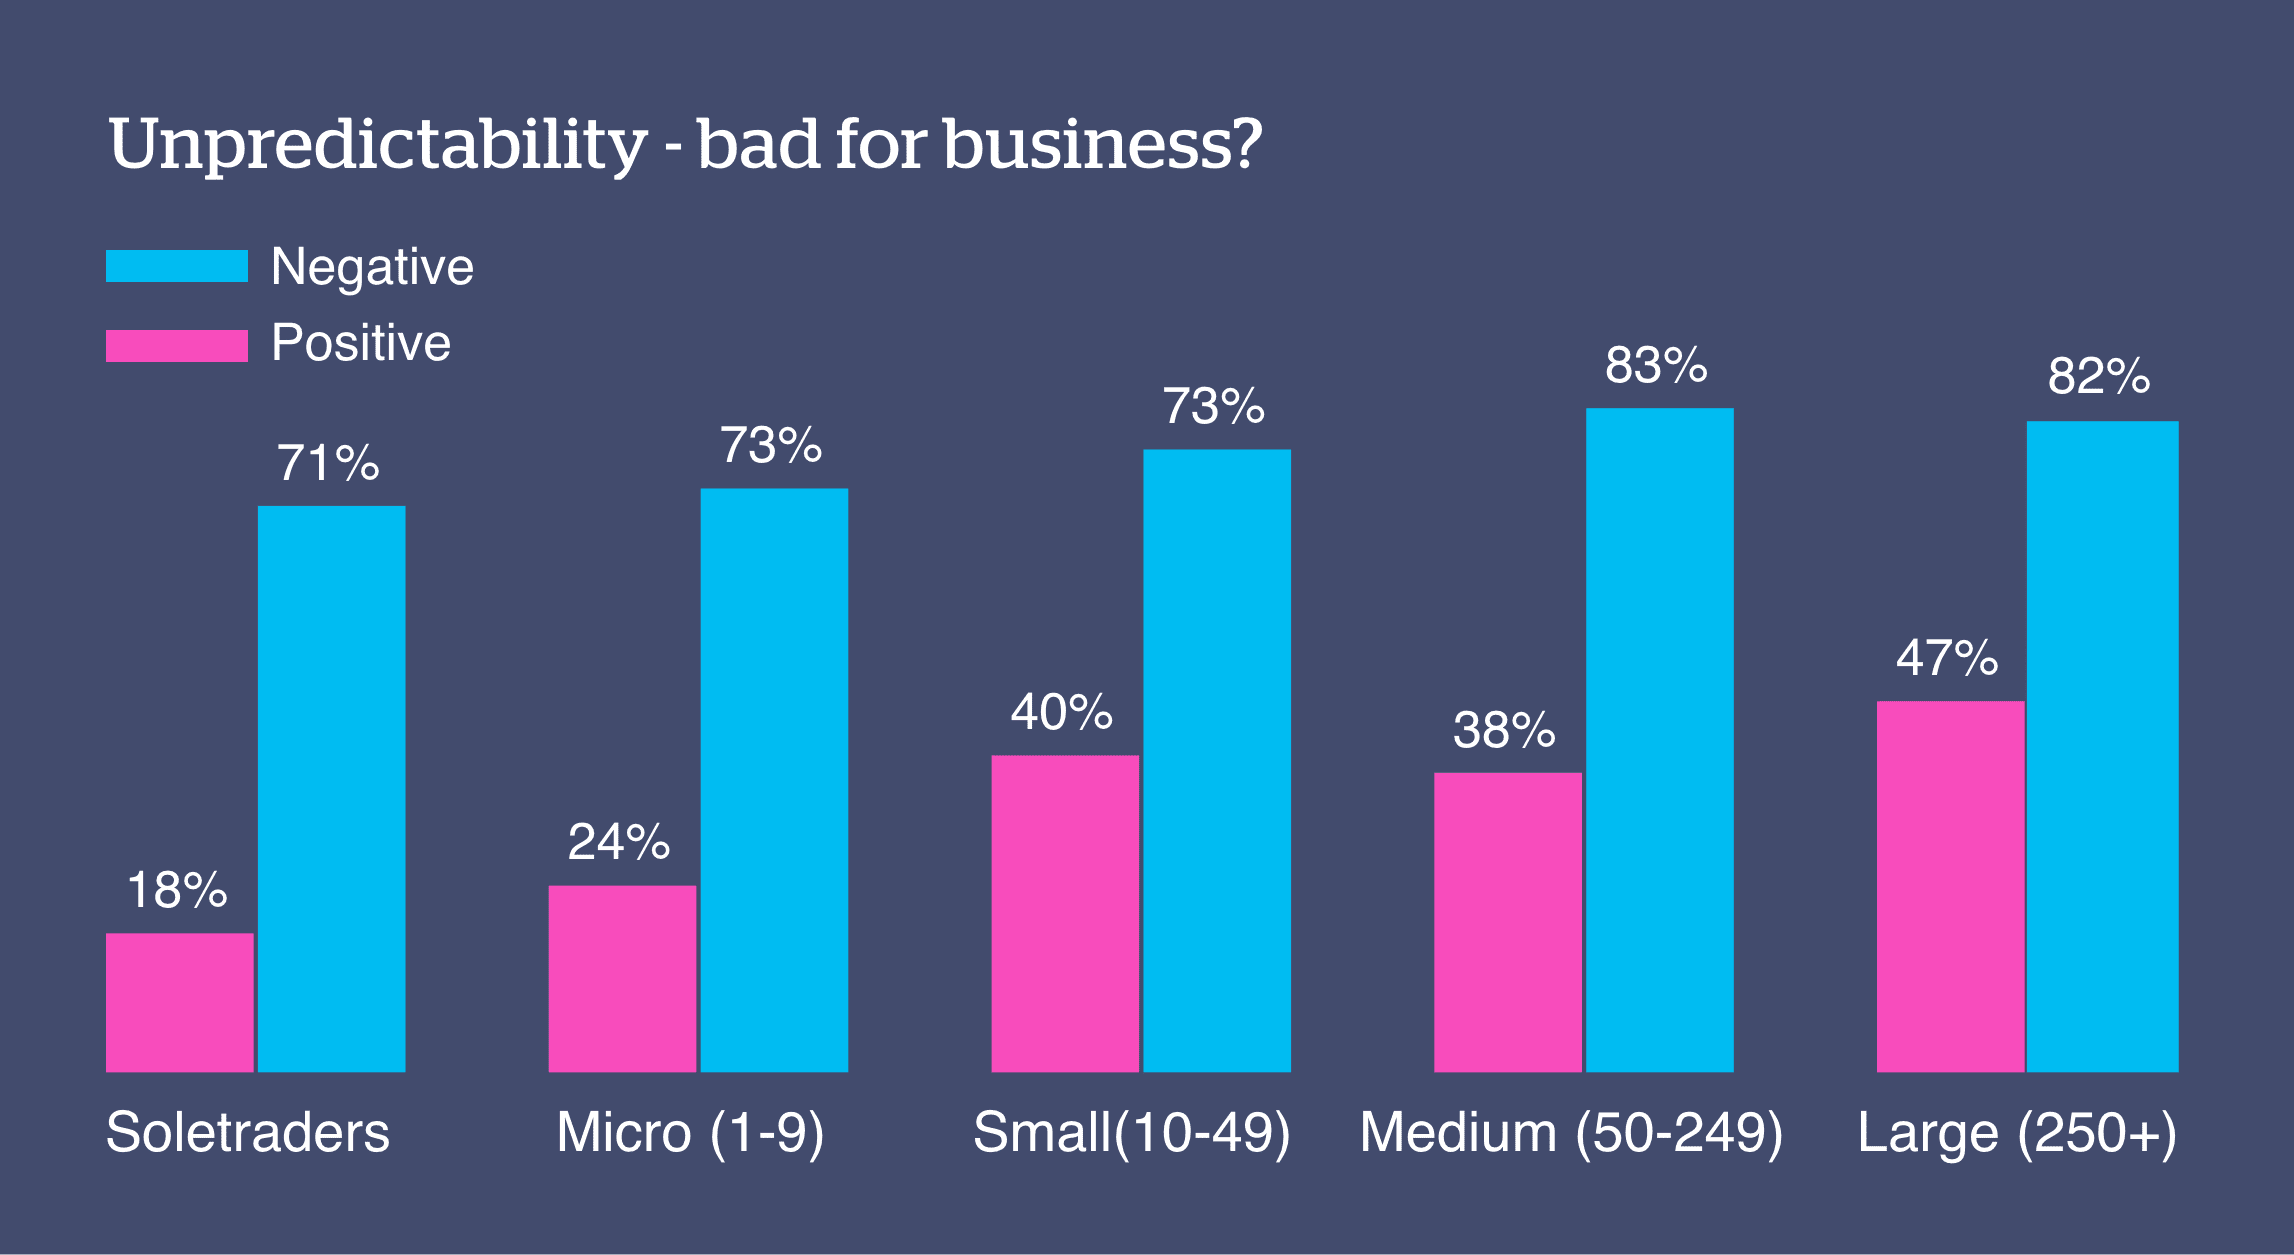 Source: The QBE Unpredictability Index - 2019 'What impact, if any, have unpredictable events had on the business you work for?'